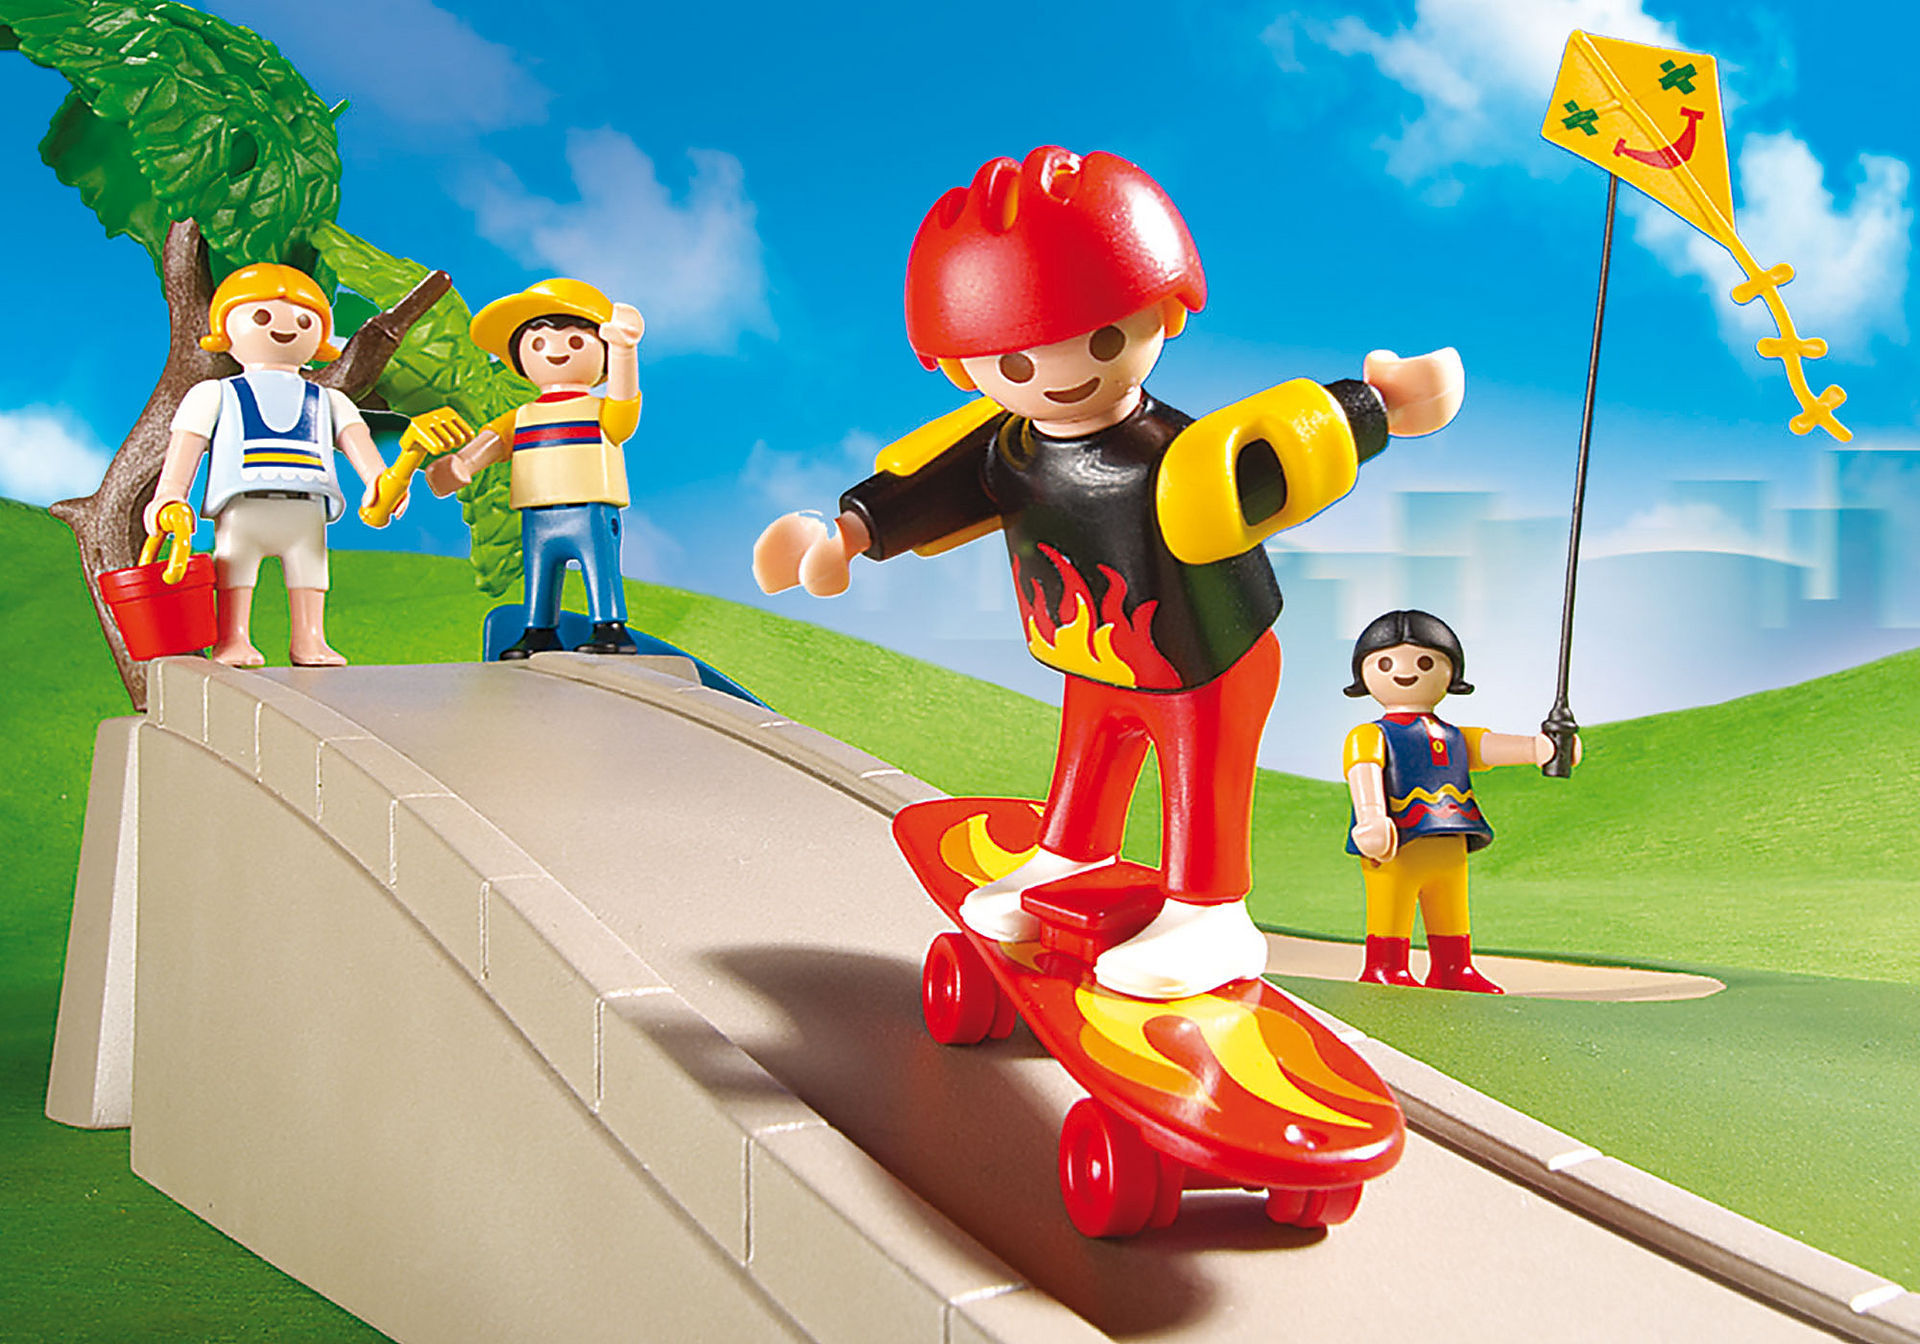 http://media.playmobil.com/i/playmobil/4132_product_extra1/Superset Parco Giochi